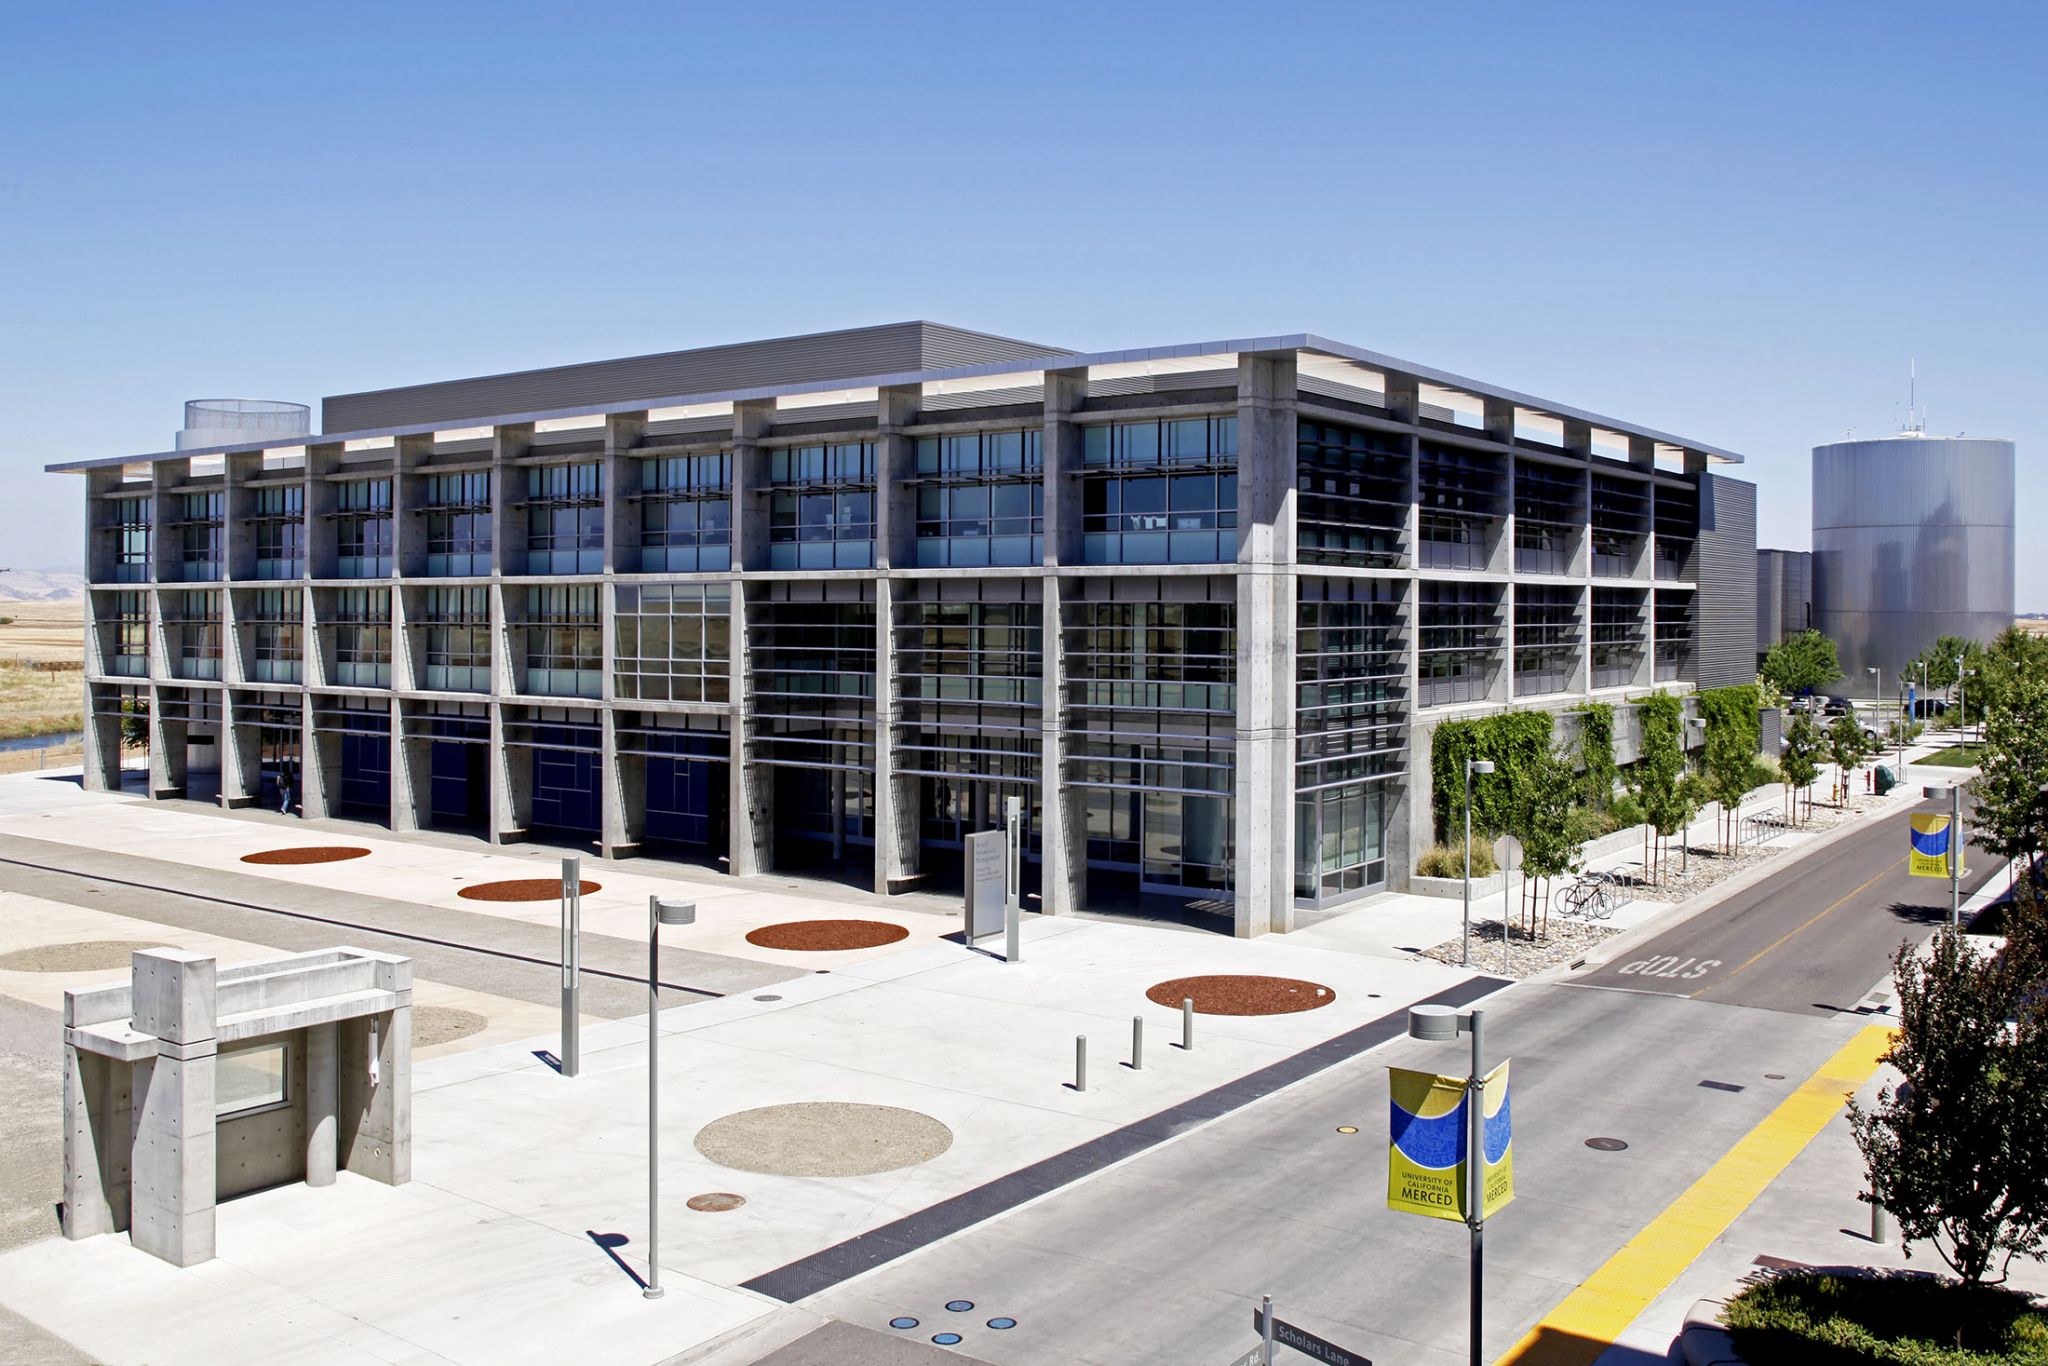 UC Merced Overview University Campus Architectural Photography